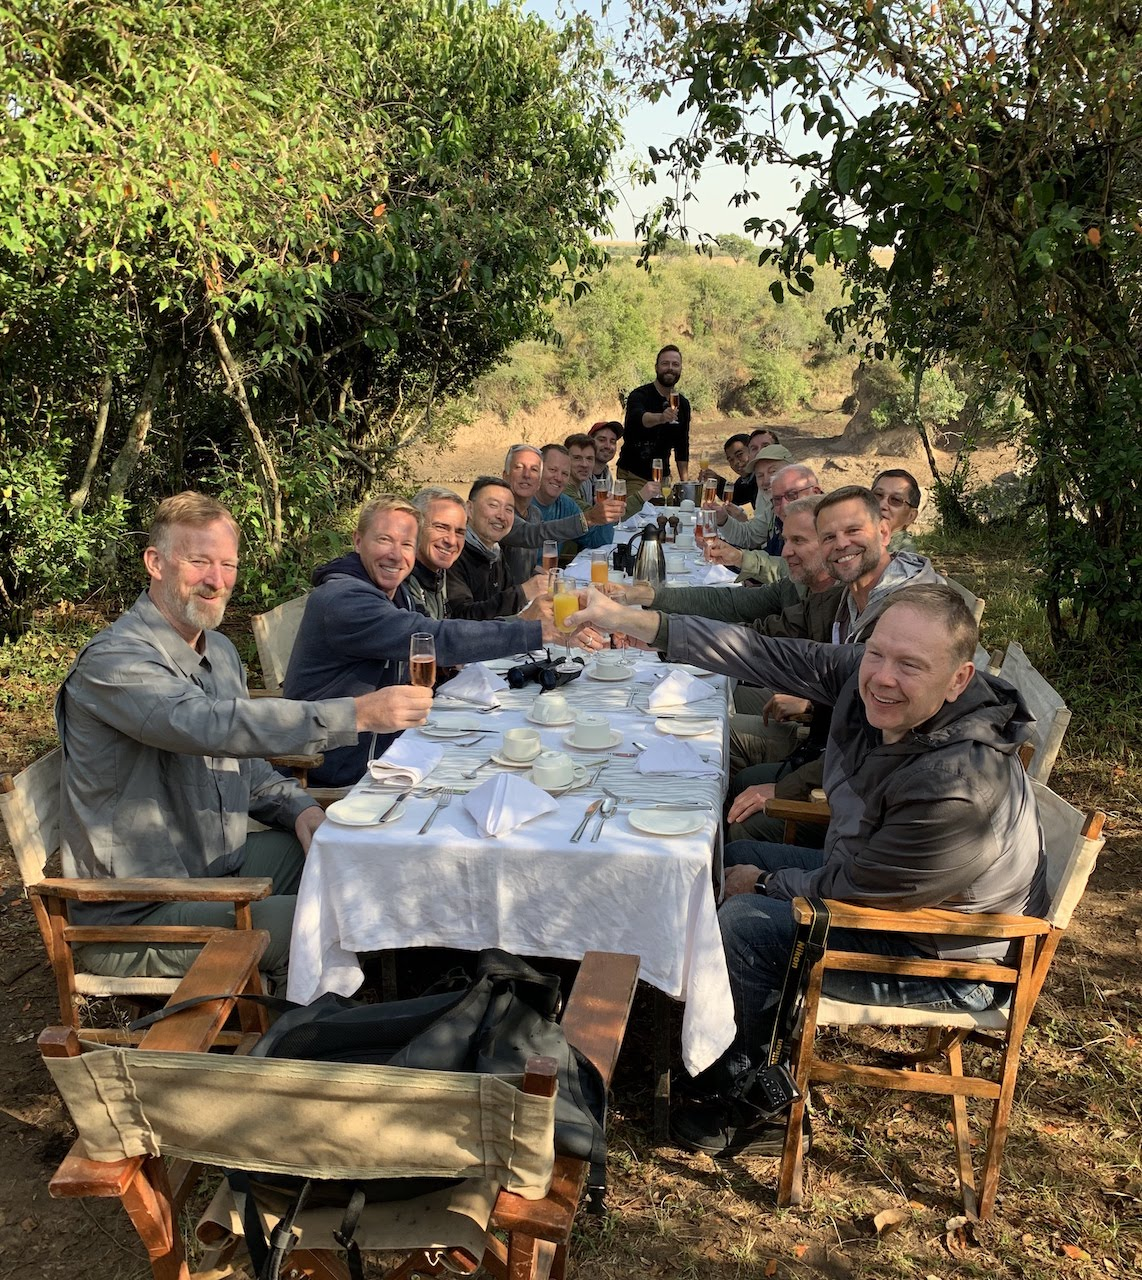 Travellers cheers each other at a unique bush lunch in Kenya.